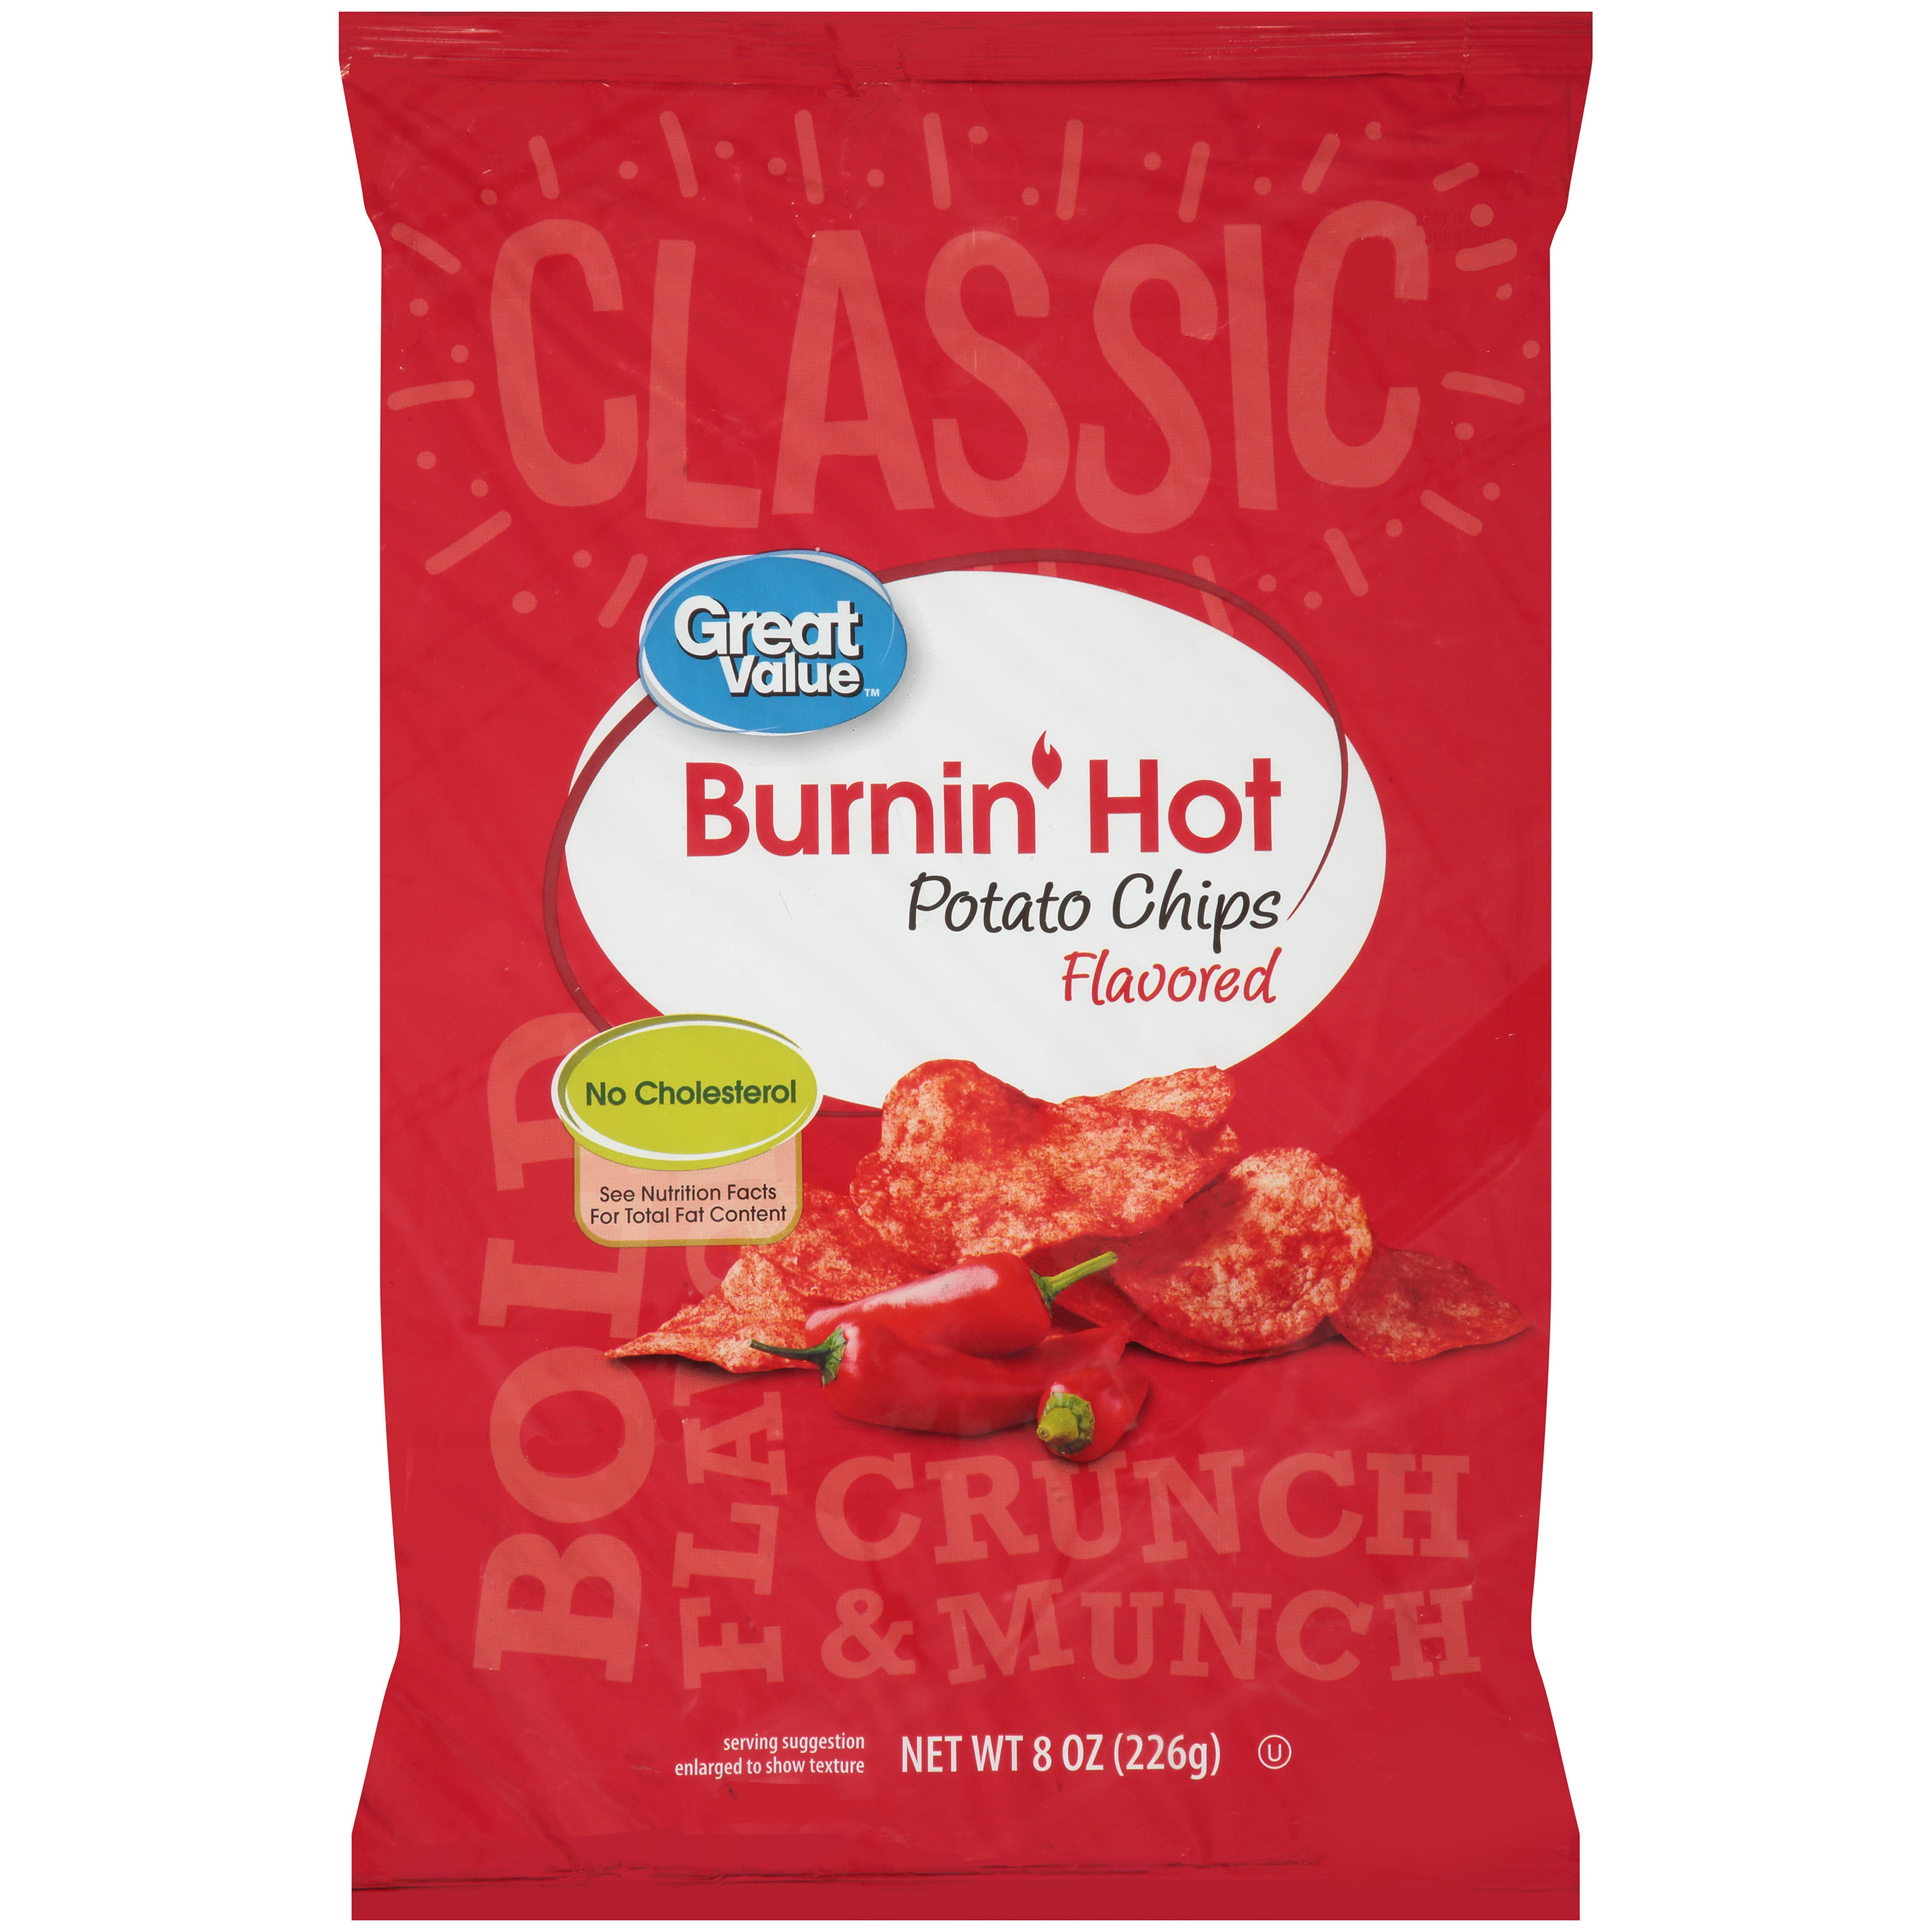 Great Value Burnin' Hot Potato Chips, 8 Oz